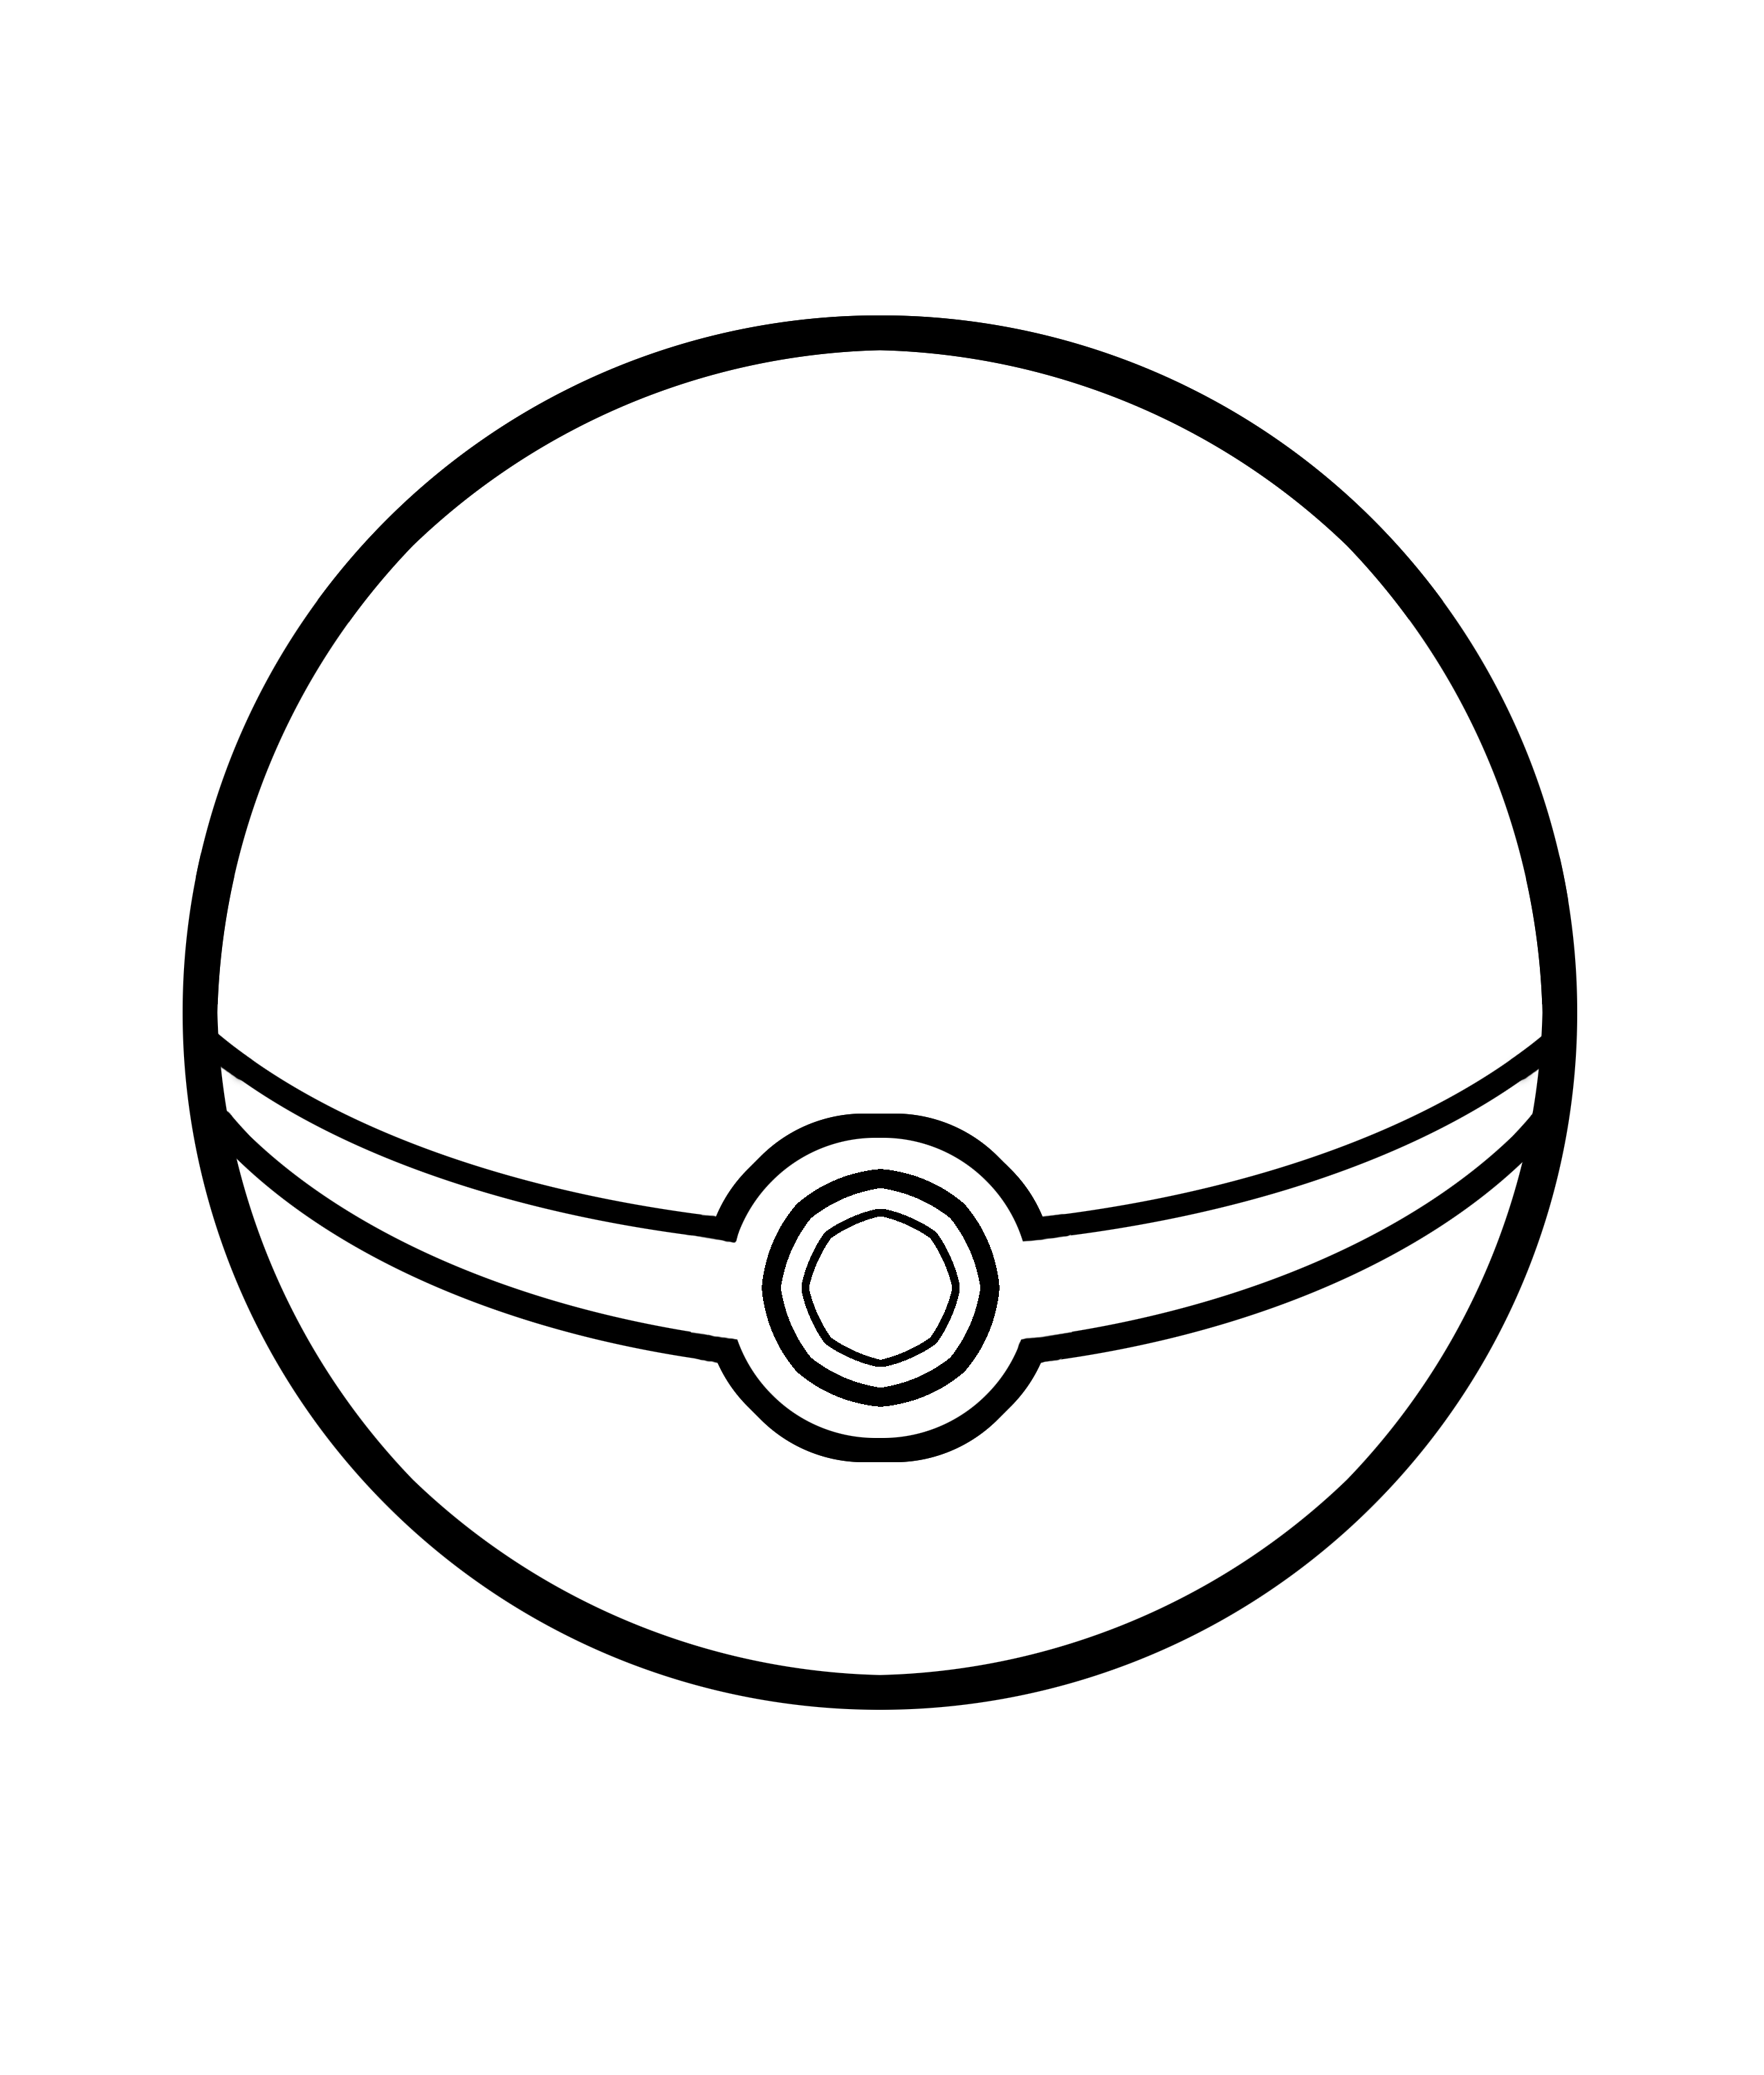 Pokemon Ball Coloring Pages Within Pokeballs Colouring Pages Clipart Best Clipart Best